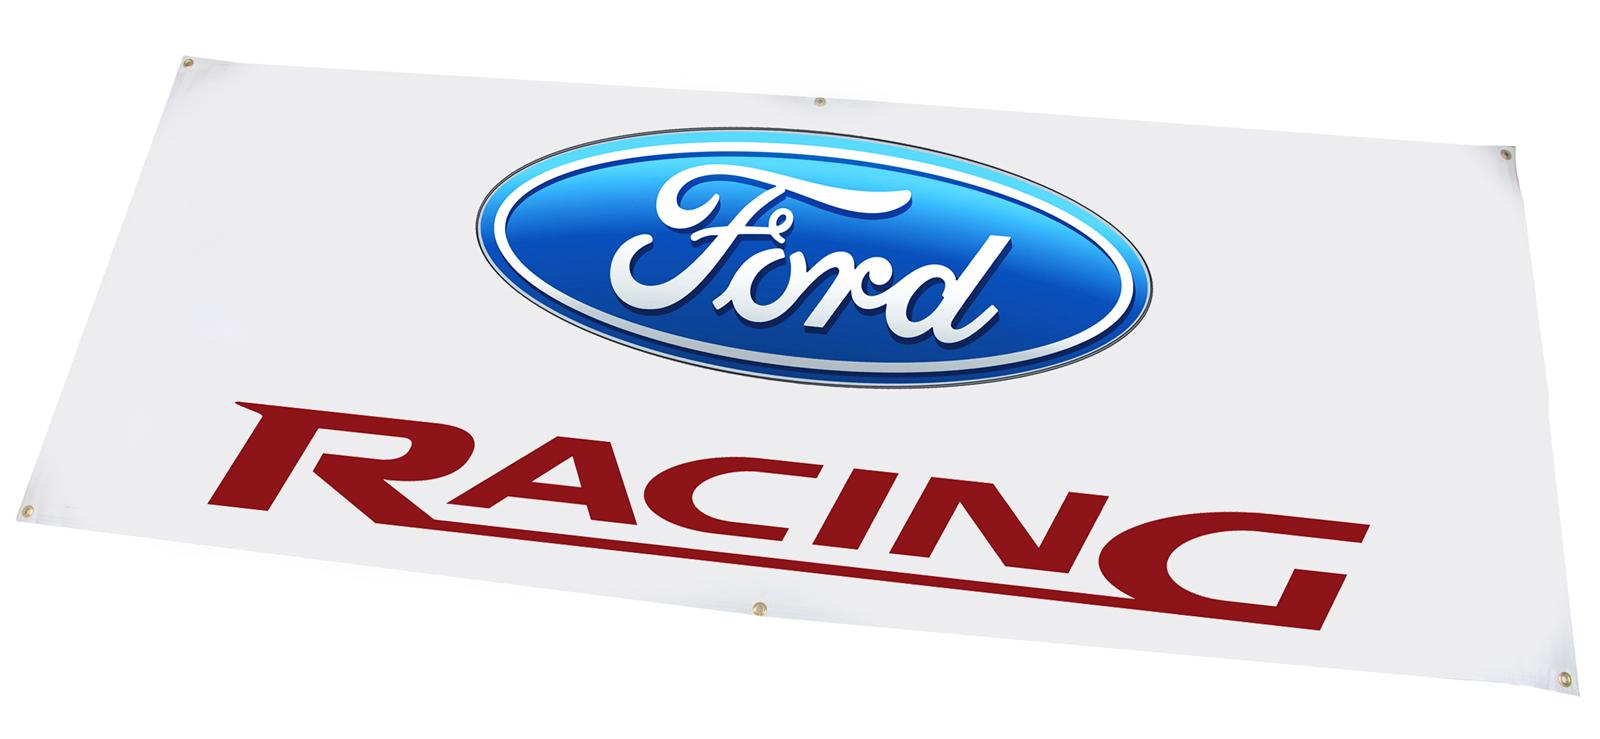 Ford performance parts banners m 1827 a1 free shipping on orders over 99 at summit racing